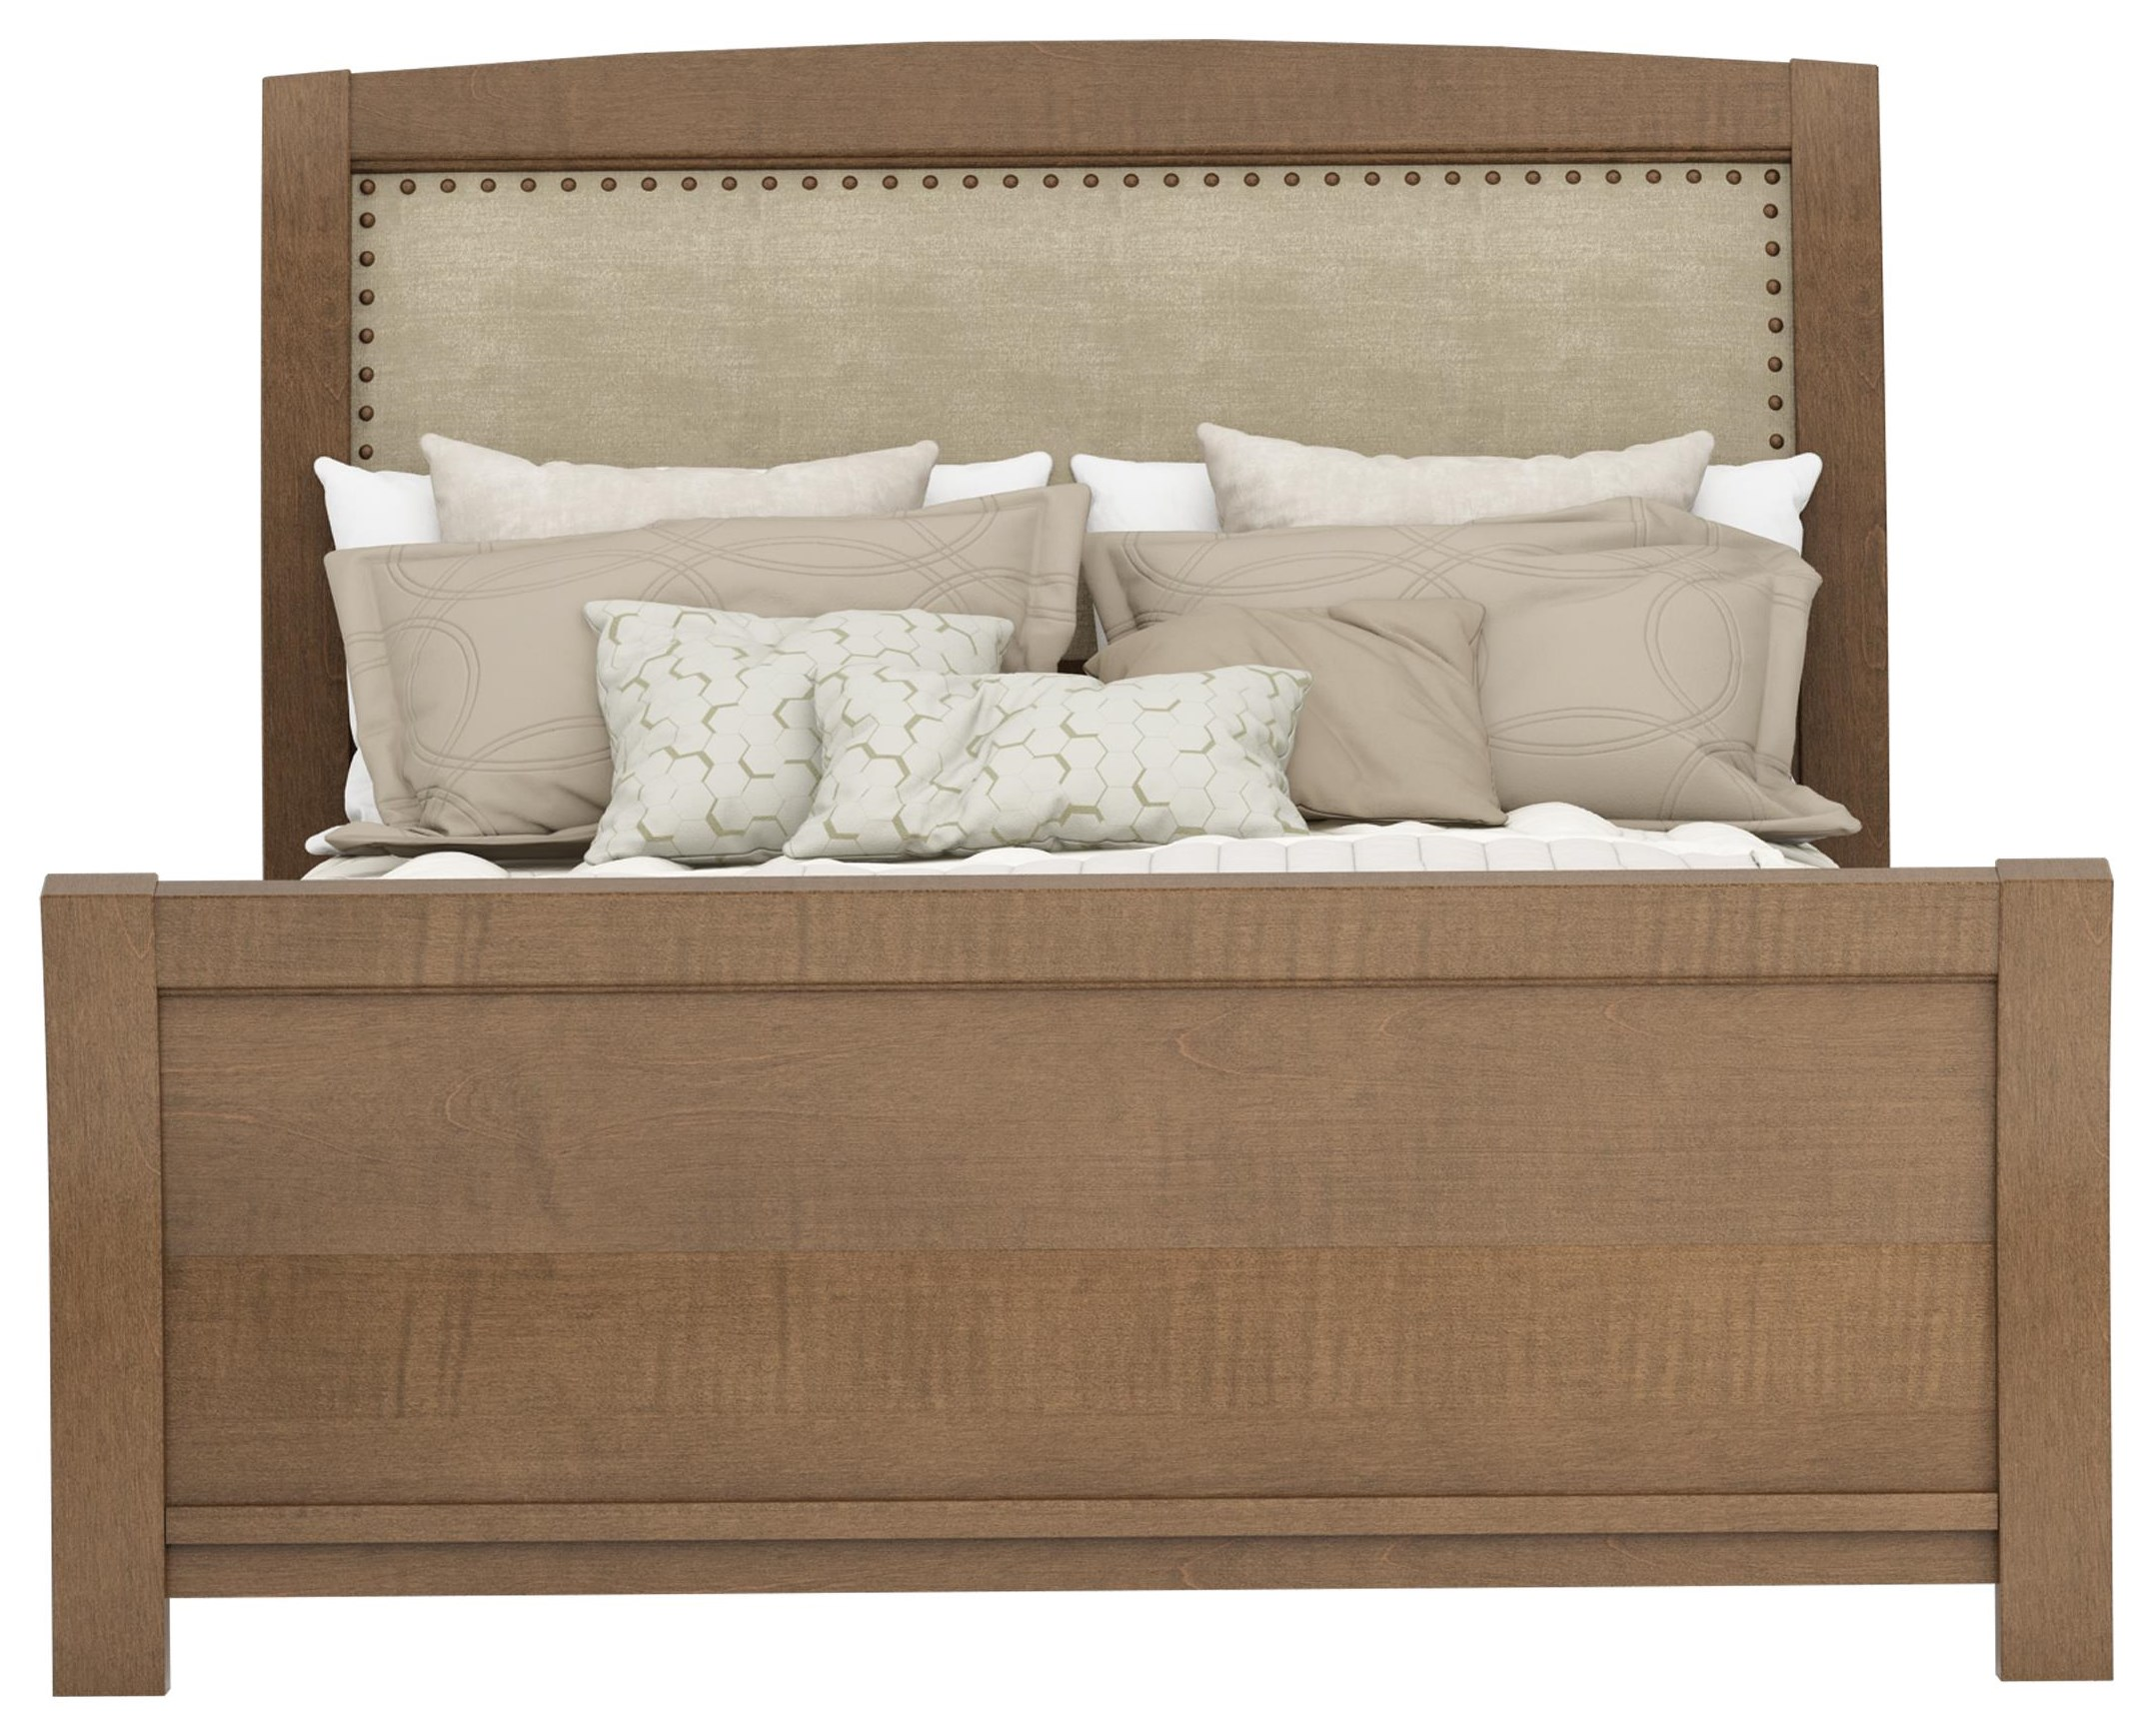 Sienna Queen Upholstered Bed with Speakers by Defehr at Stoney Creek Furniture